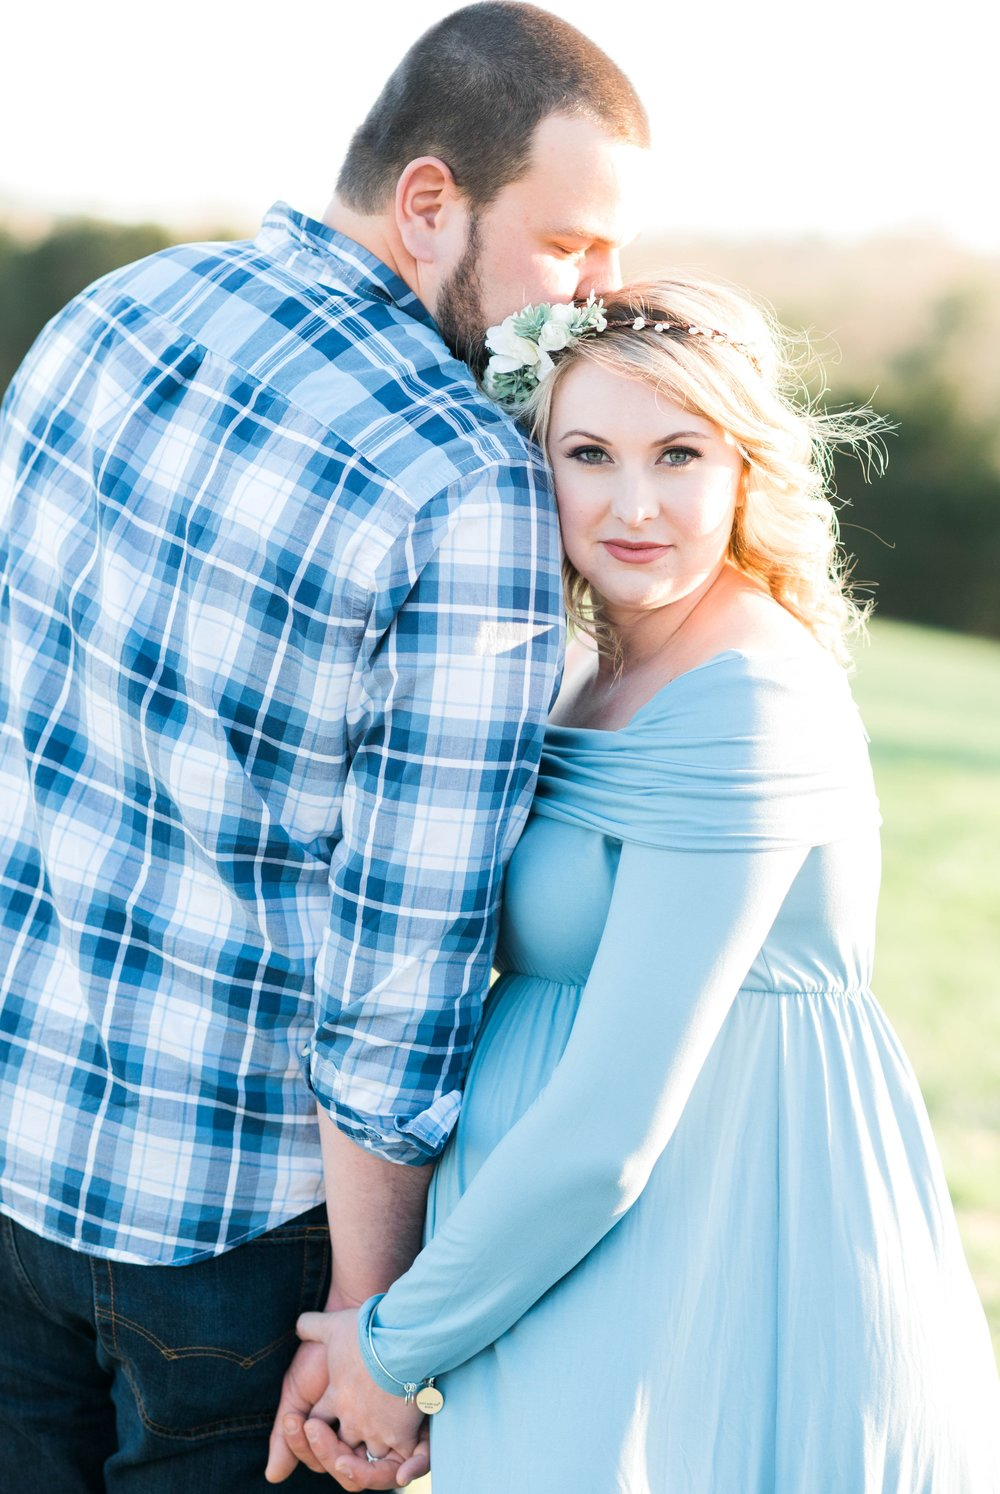 SorellaFarms_Jessica+Dylan_MaternitySession_Virginiaweddingphotographer 26.jpg